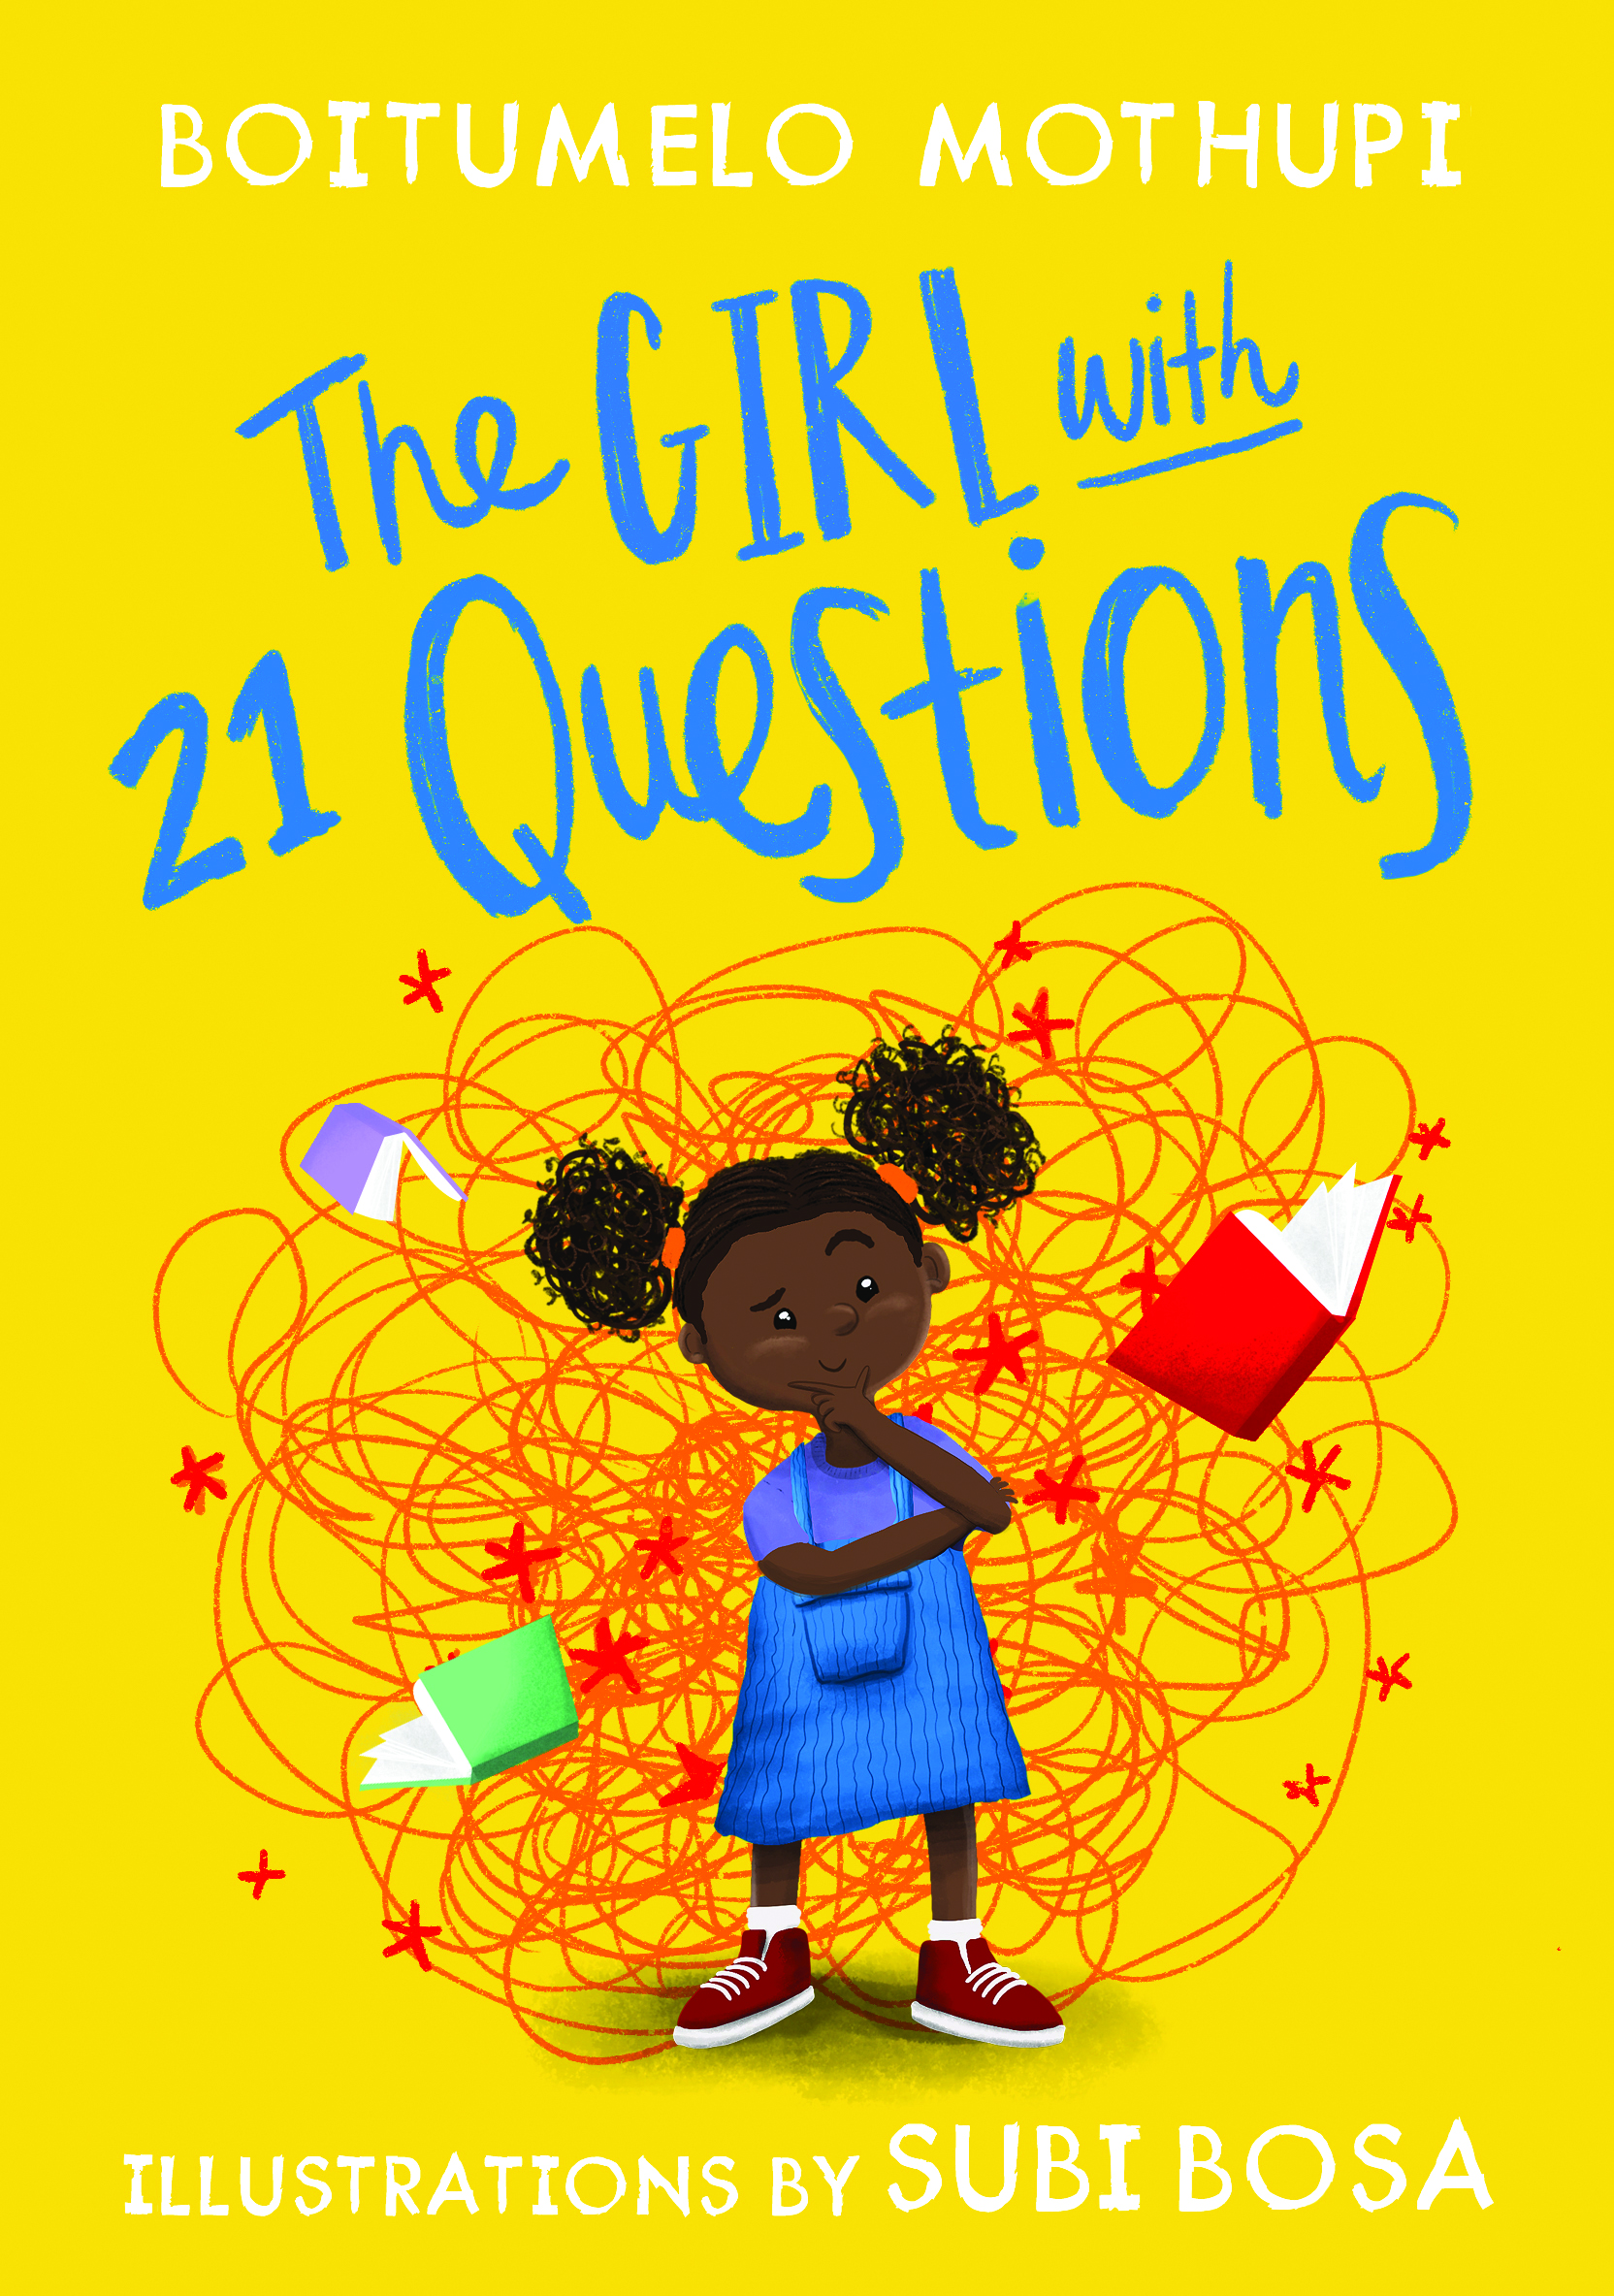 The Girl with 21 Questions